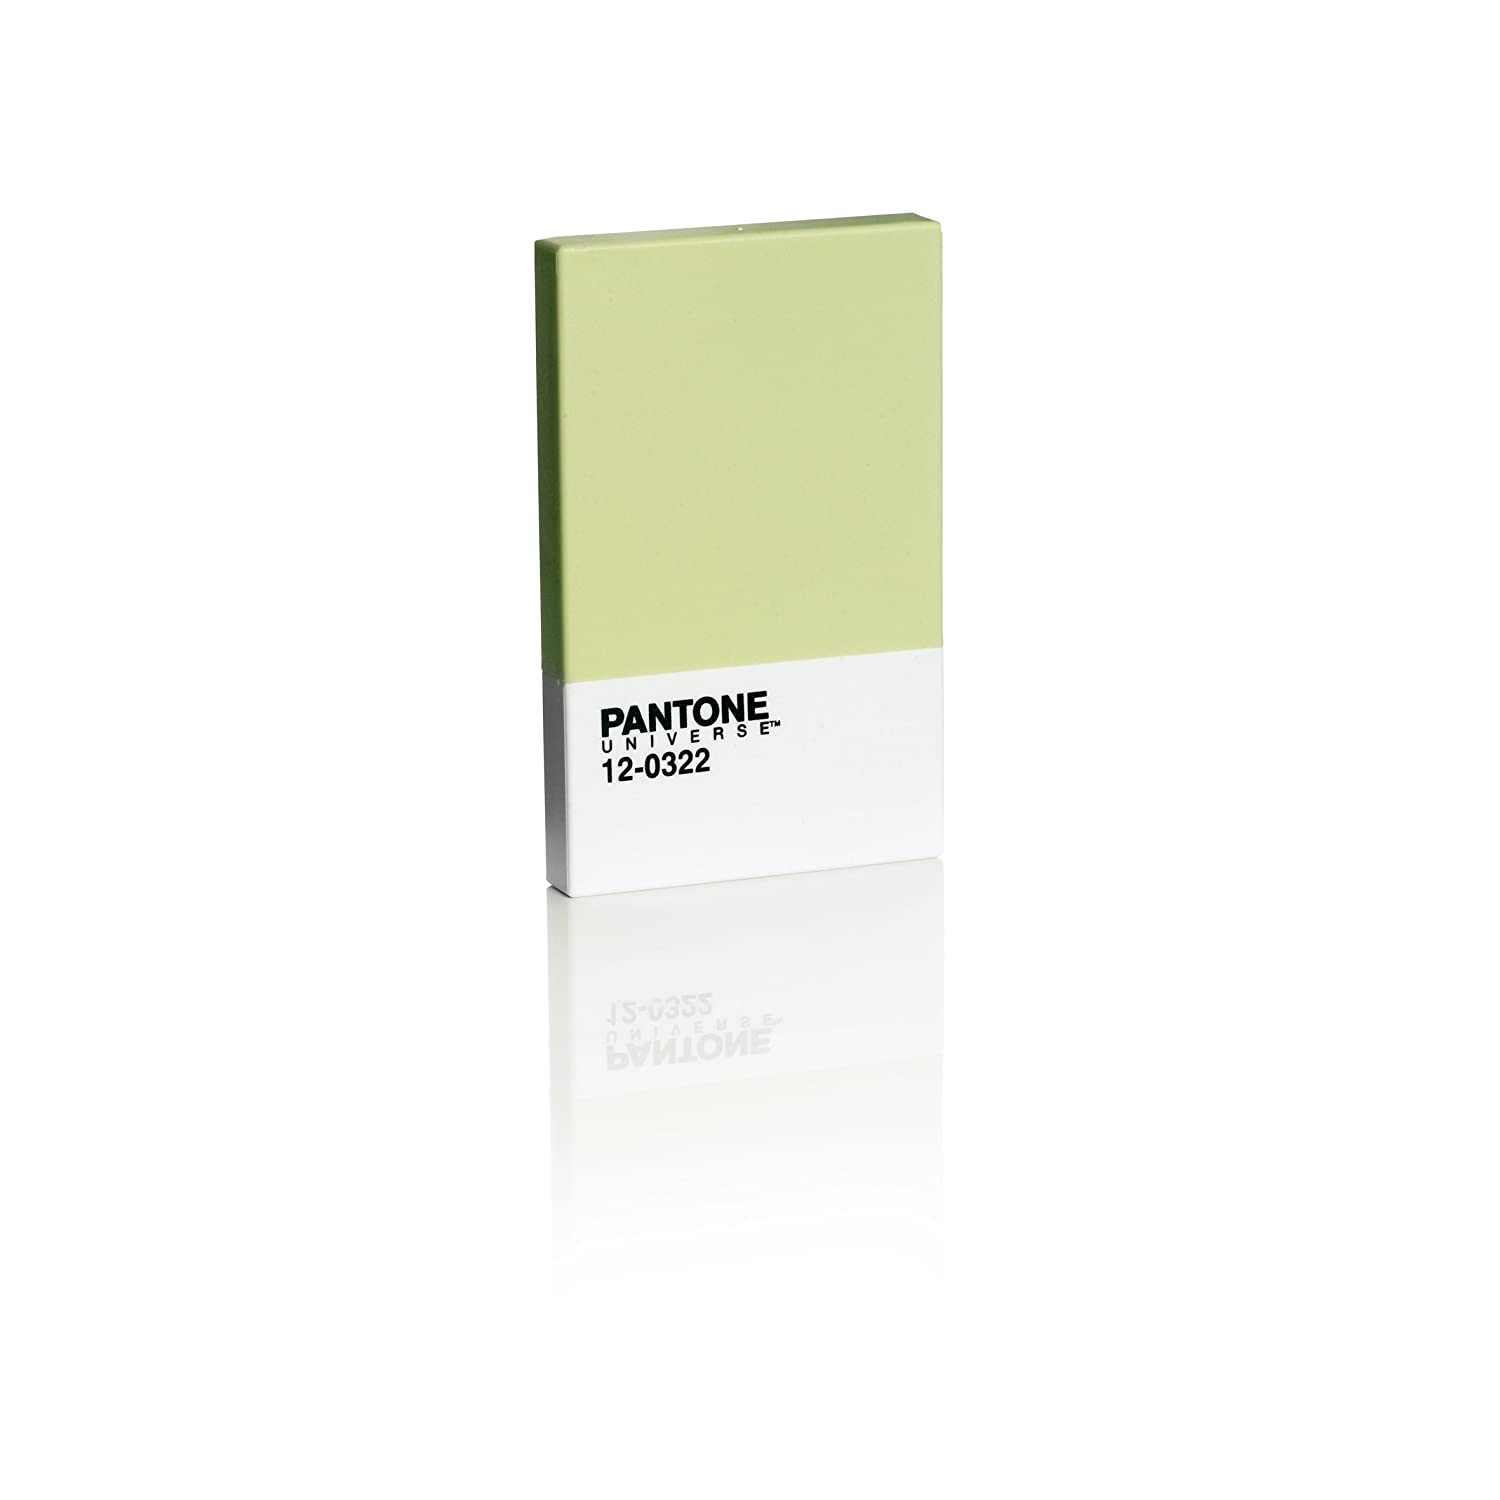 Amazon.com: Pantone Universe Classic Credit and Business Card Holder ...